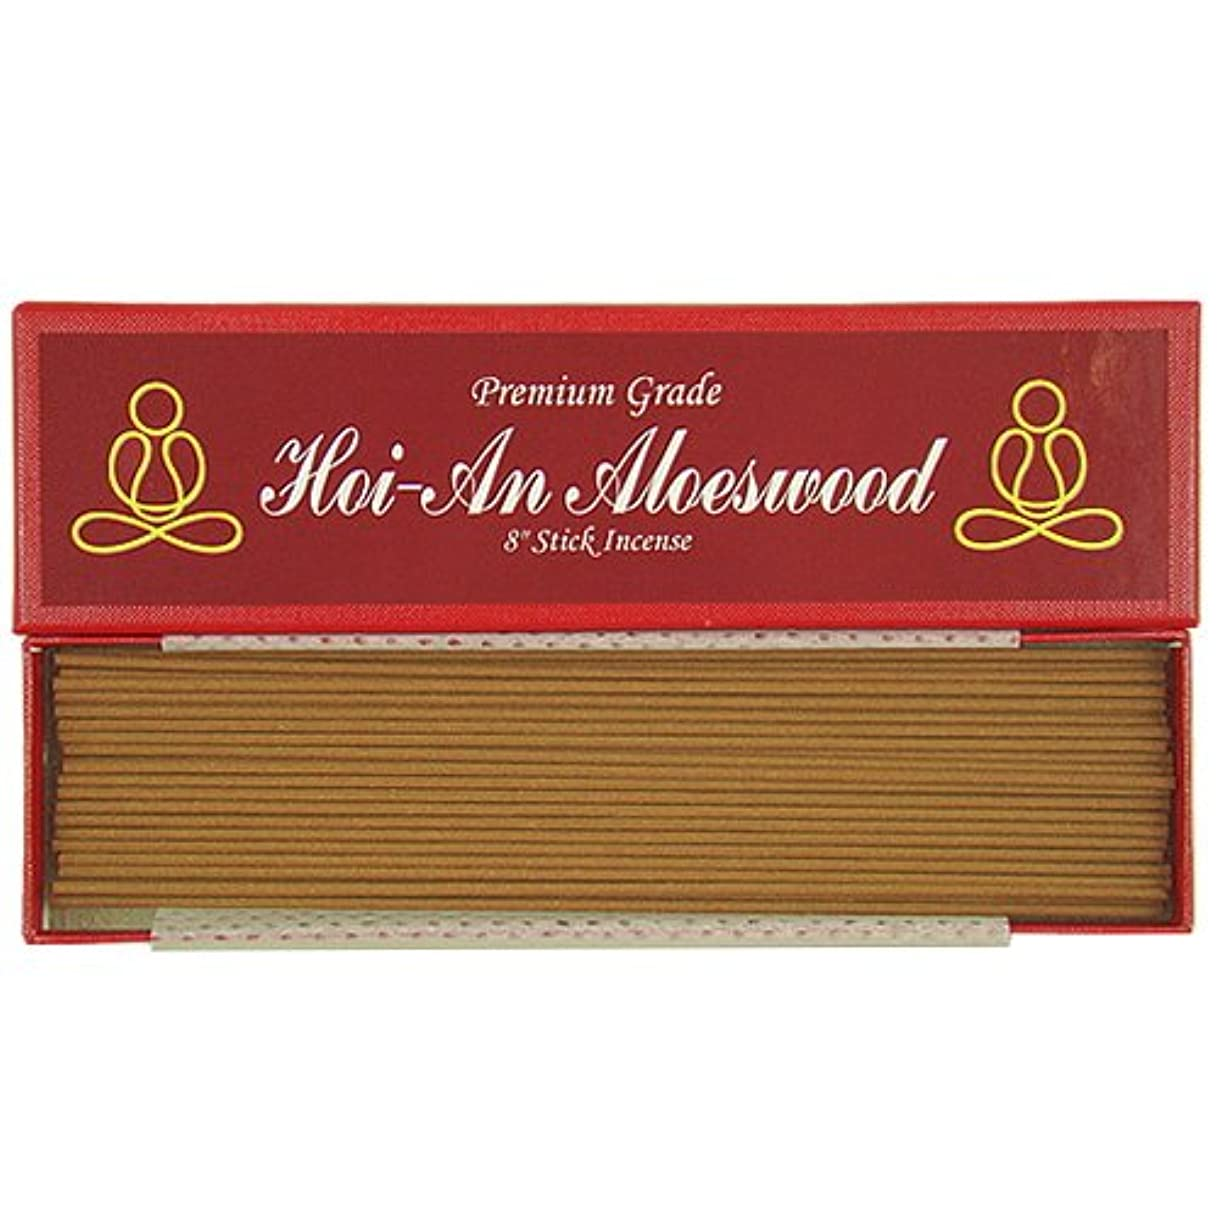 予防接種よく話されるソーダ水プレミアムVietnamese hoi-an Aloeswood – 8 Inches Stick Incense – 100 % Natural – g054s